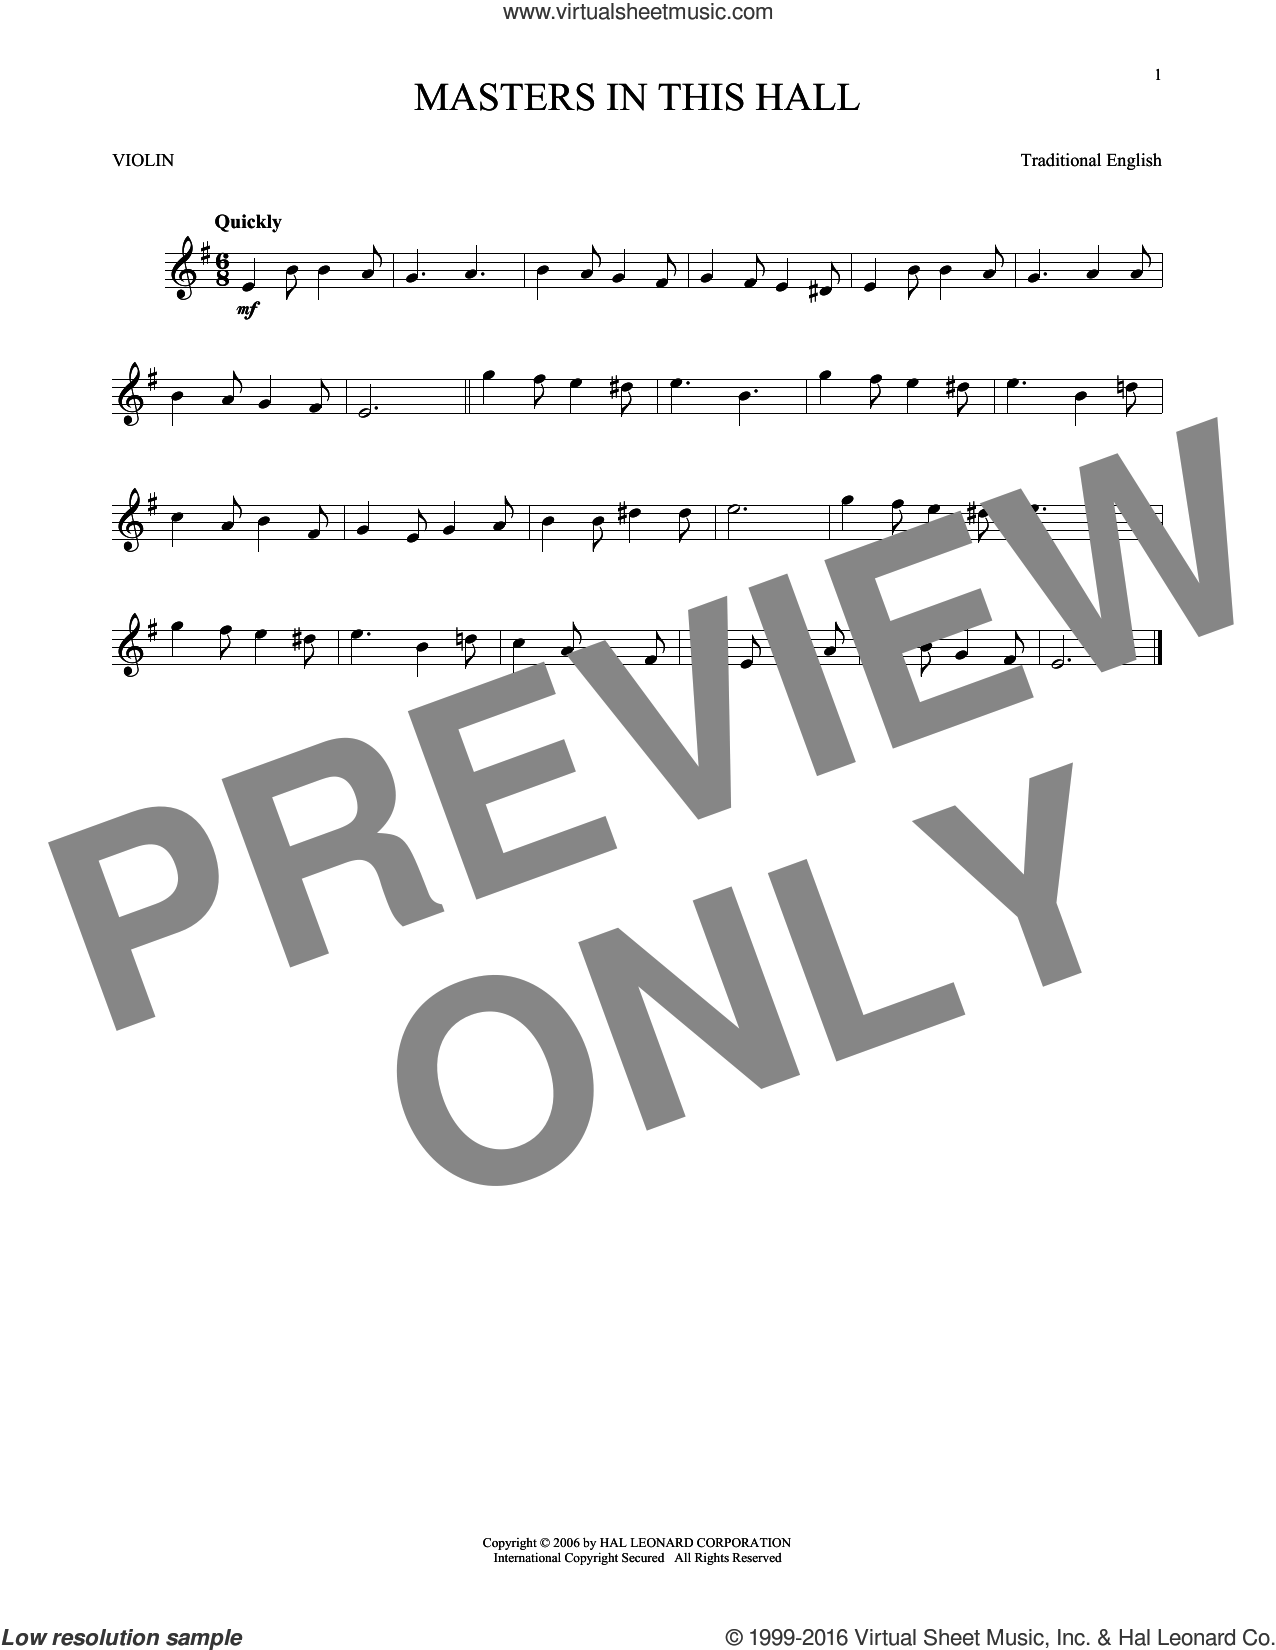 Masters In This Hall sheet music for violin solo, intermediate skill level